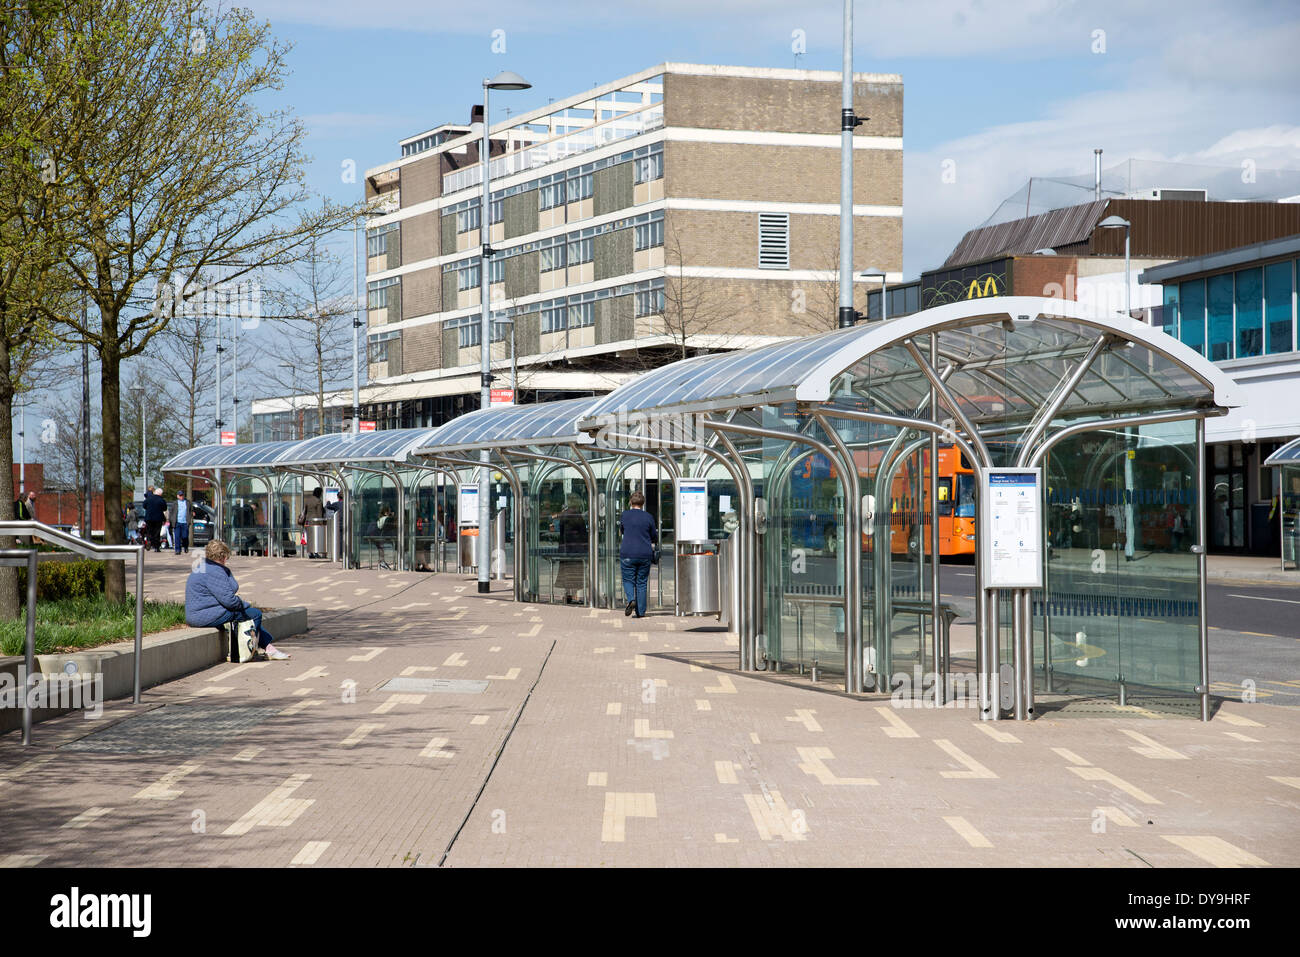 Bus shelters in Corby town centre Northamptonshire UK - Stock Image